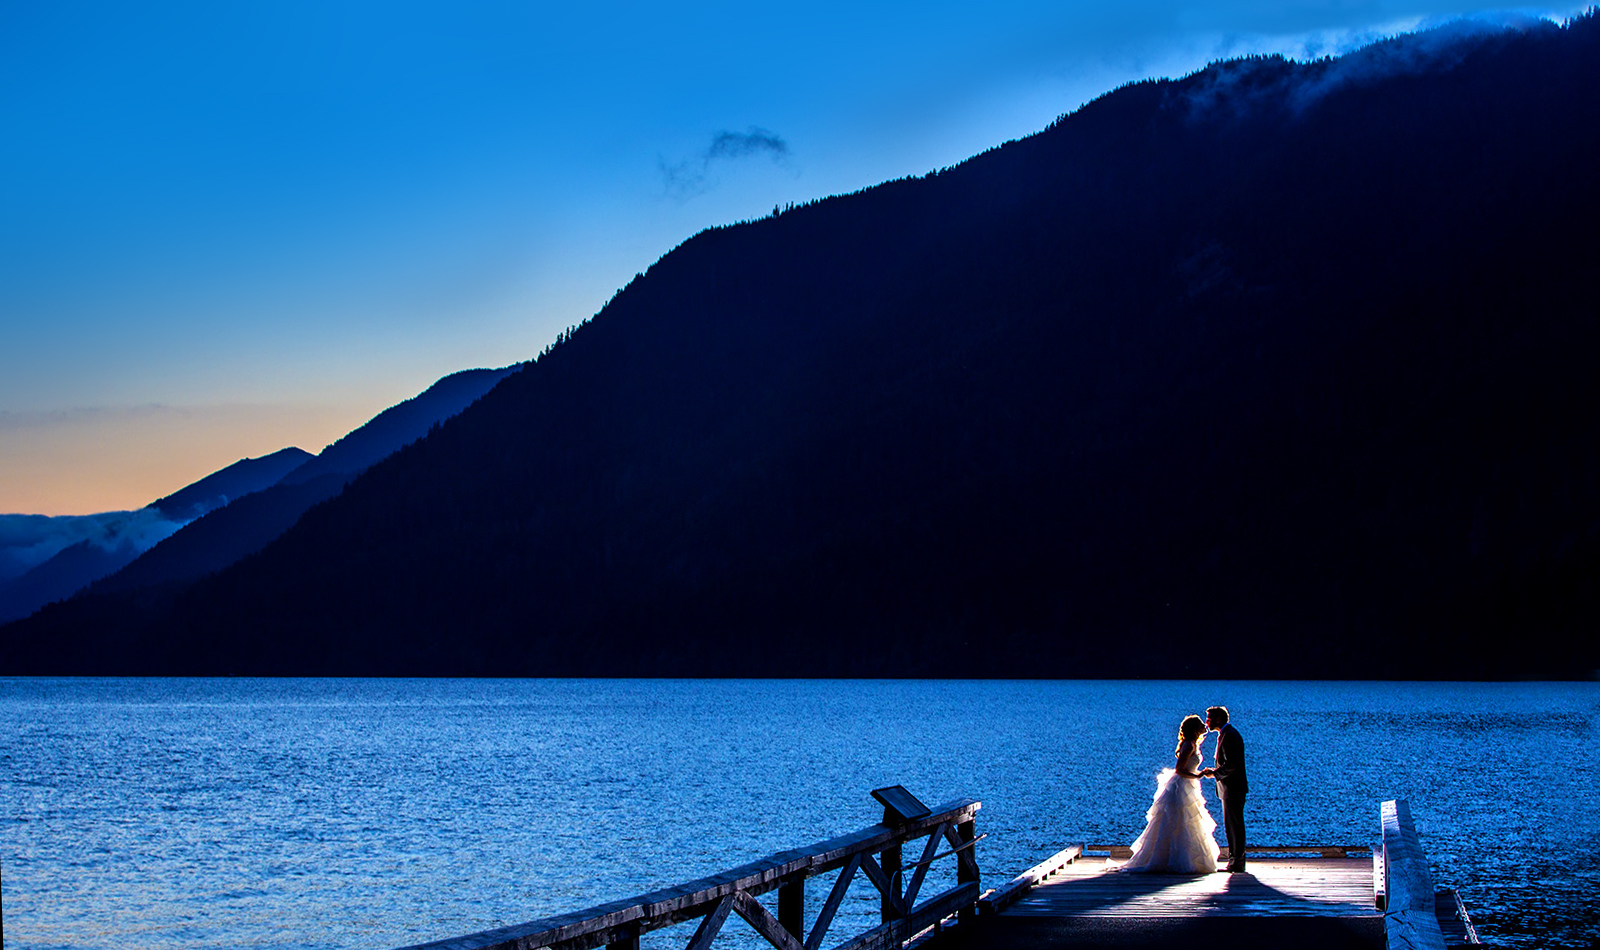 The bride & groom kiss on the dock at dusk during their Lake Crescent Lodge Wedding in Port Angeles, Washington. (Wedding Photography by Scott Eklund /Red Box Pictures)